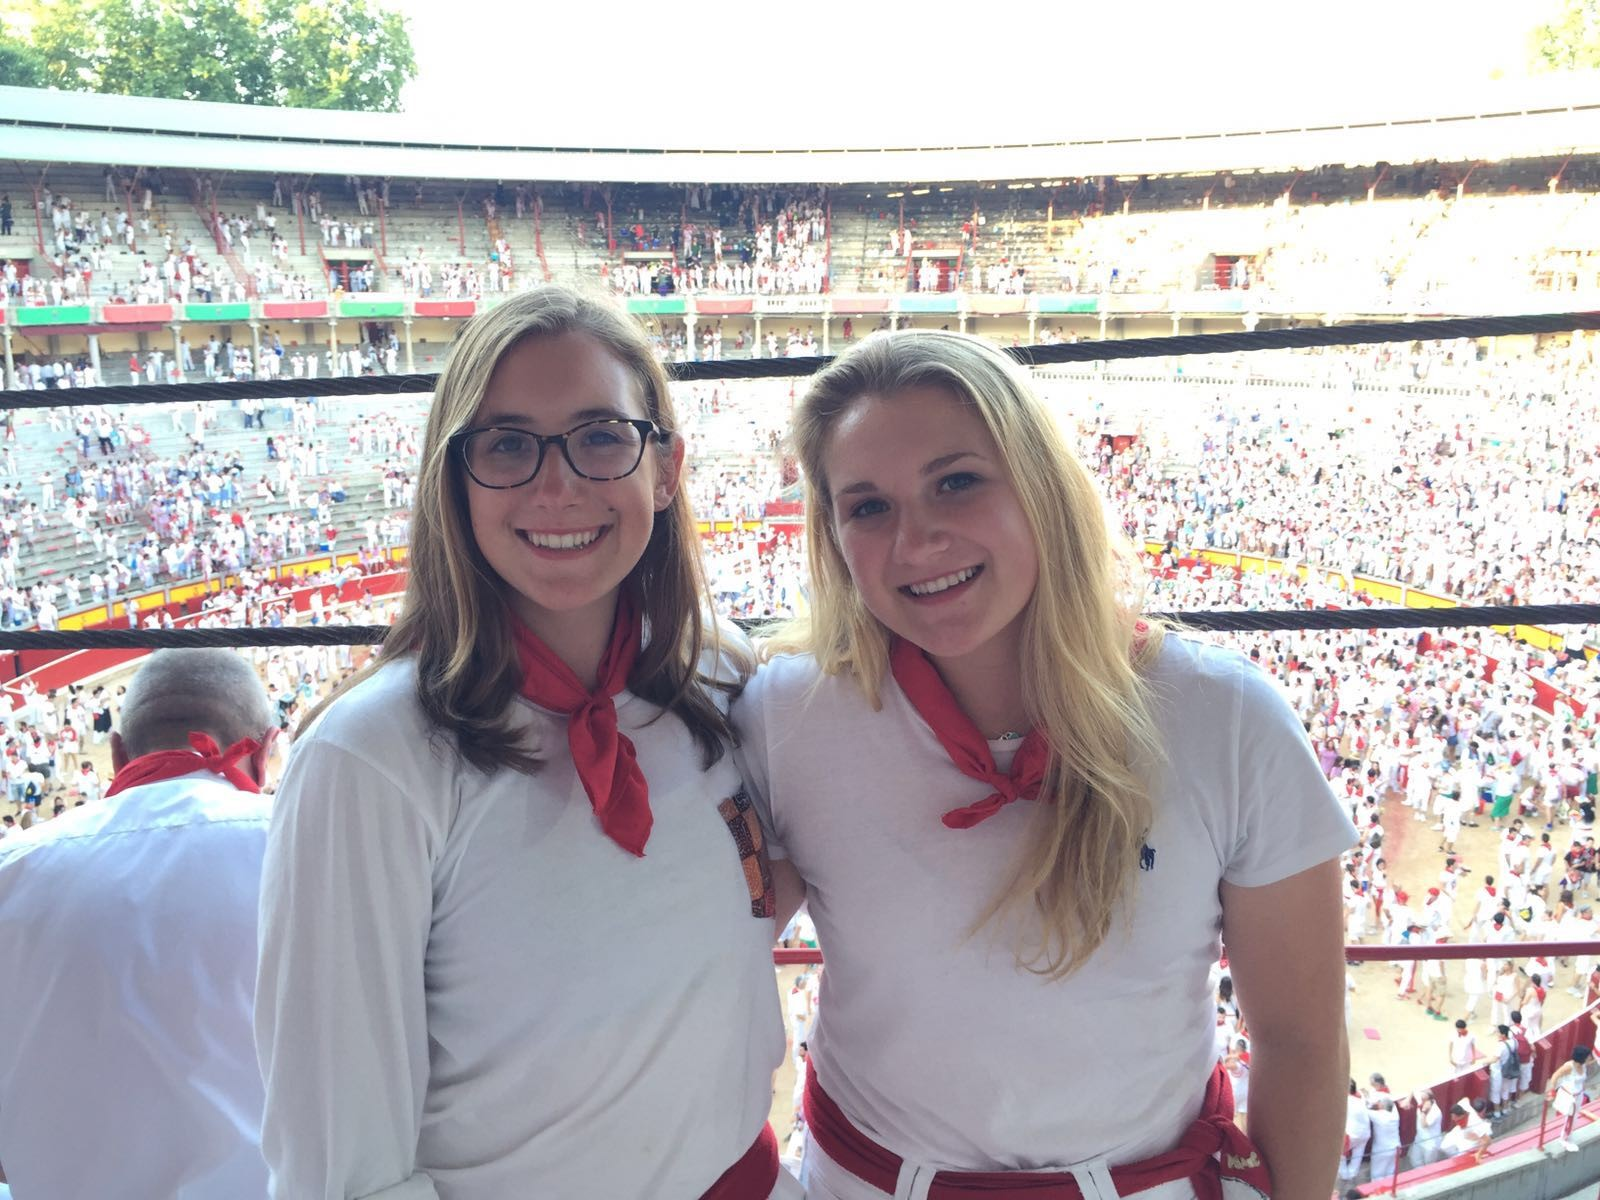 The author's daughters pose at the San Fermin festival in Spain.